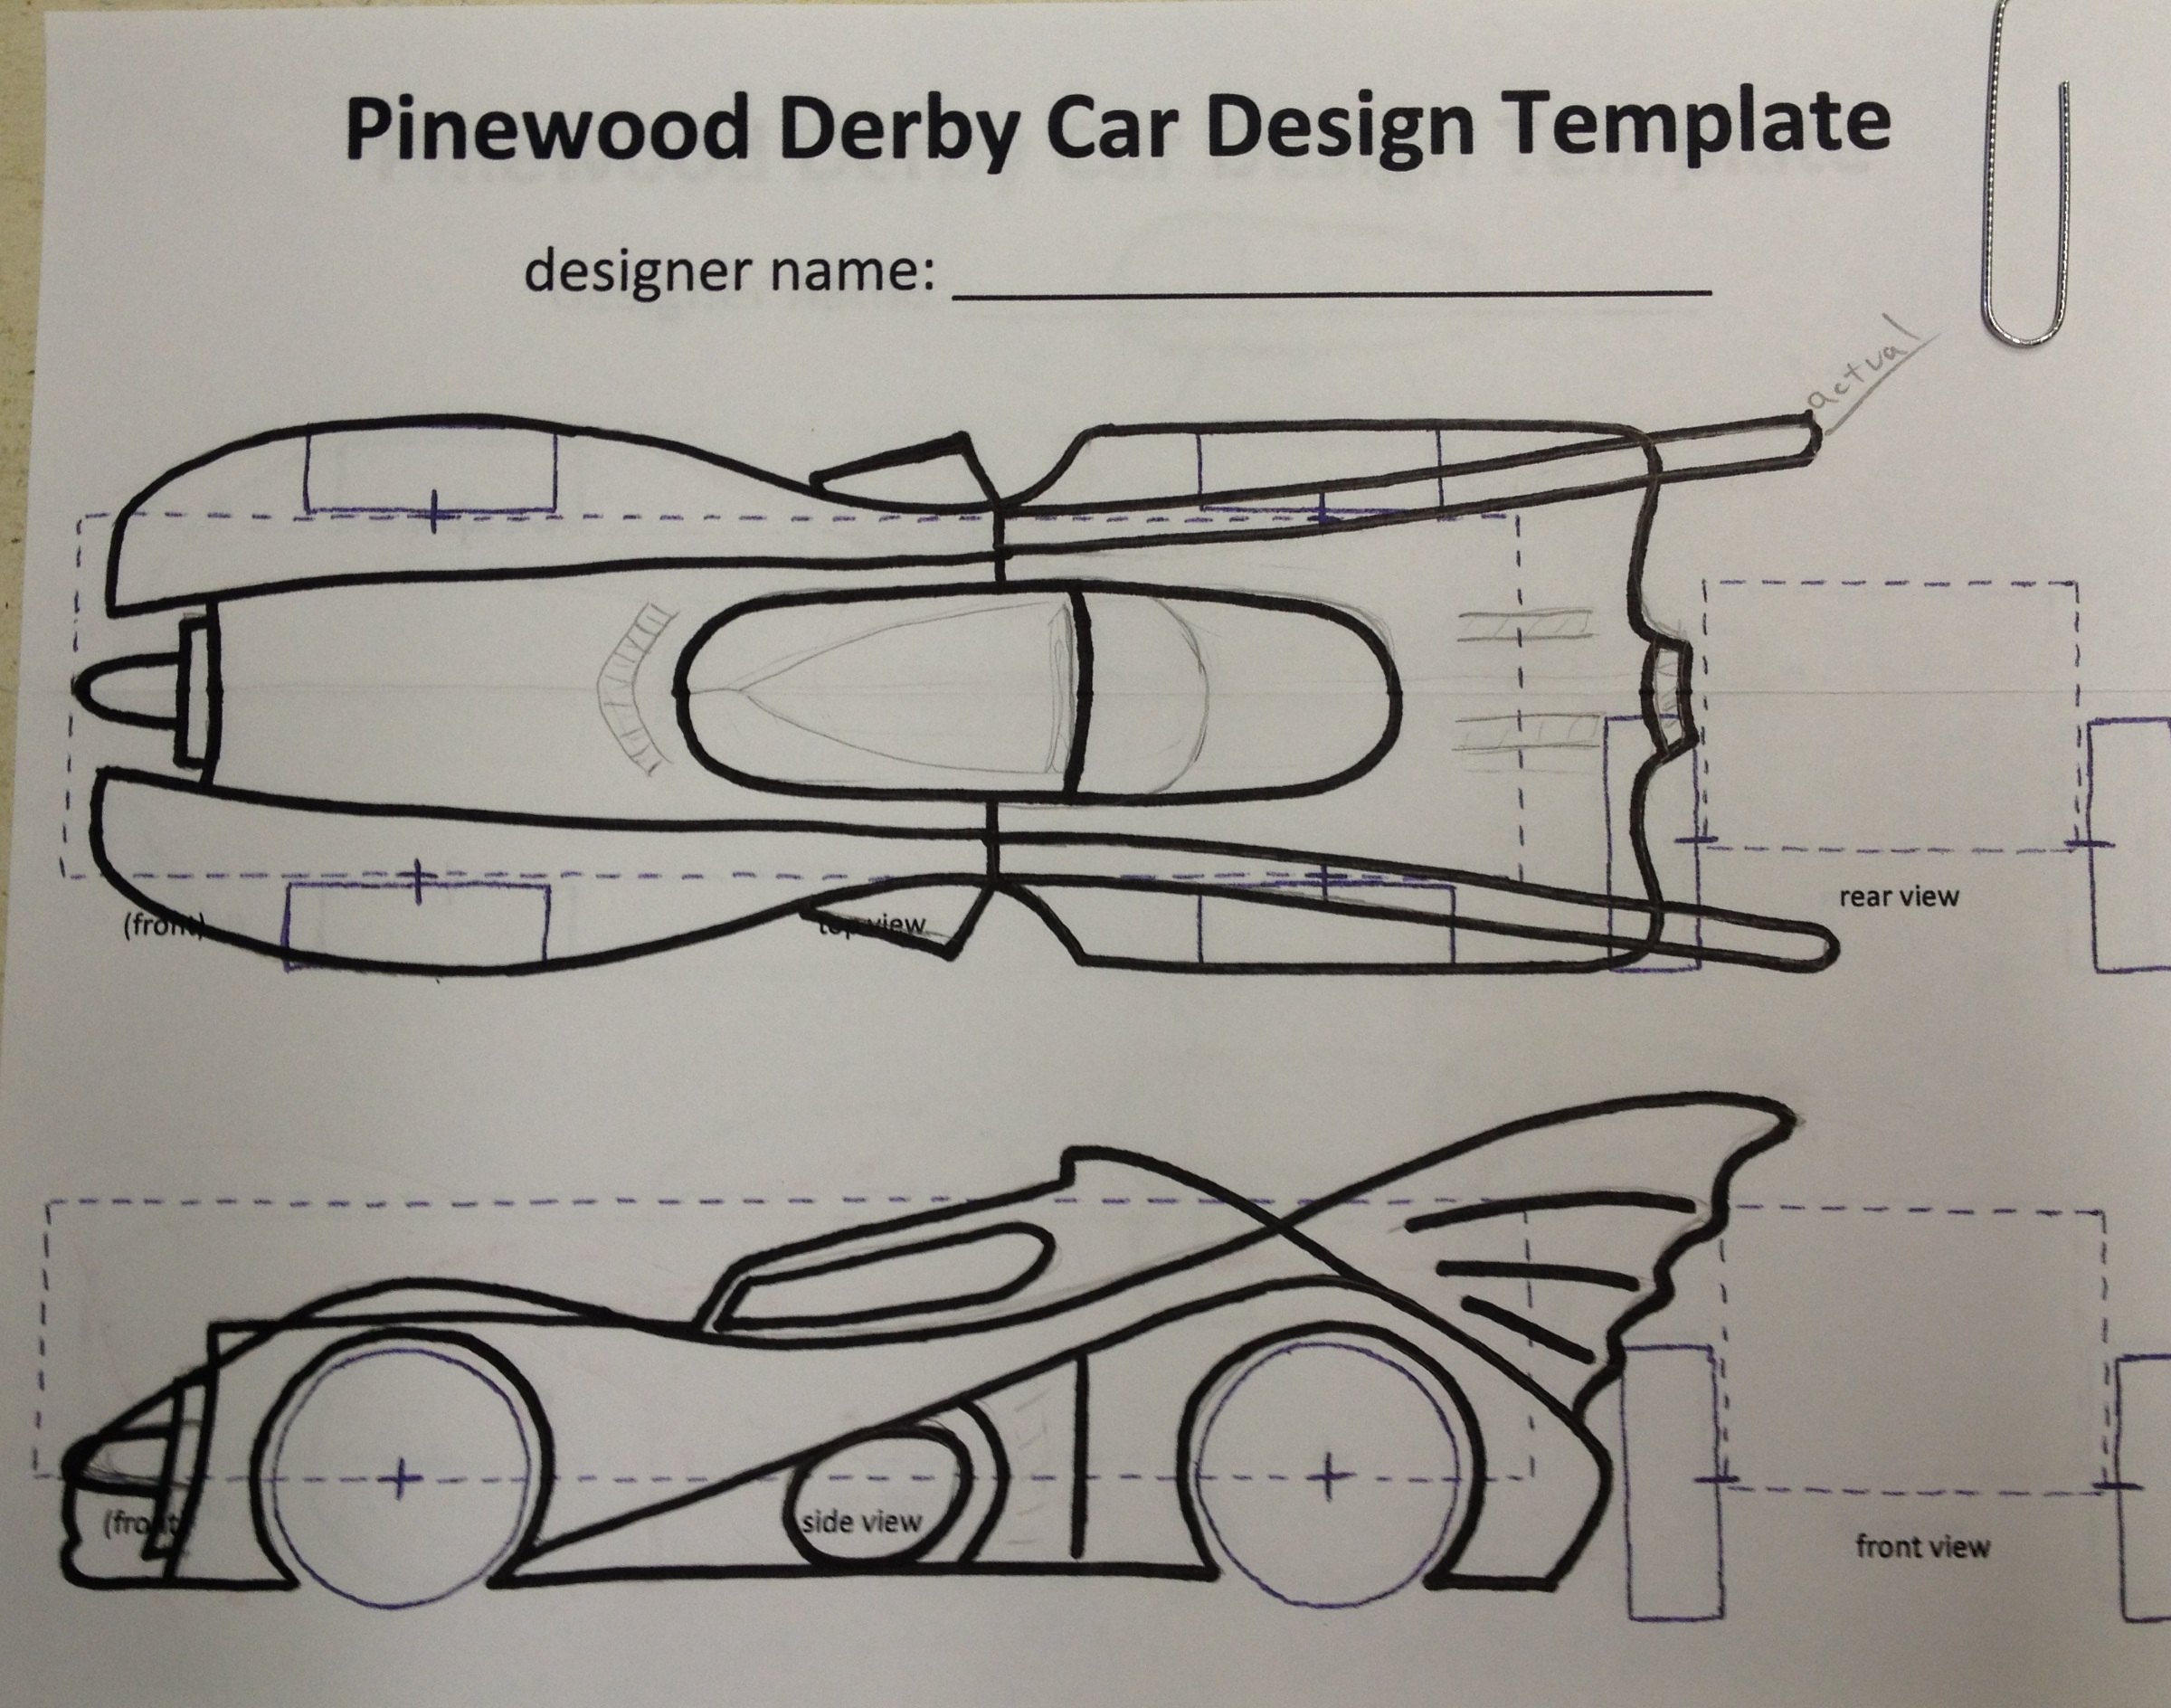 How To Build An Awesome Batmobile Pinewood Derby Car